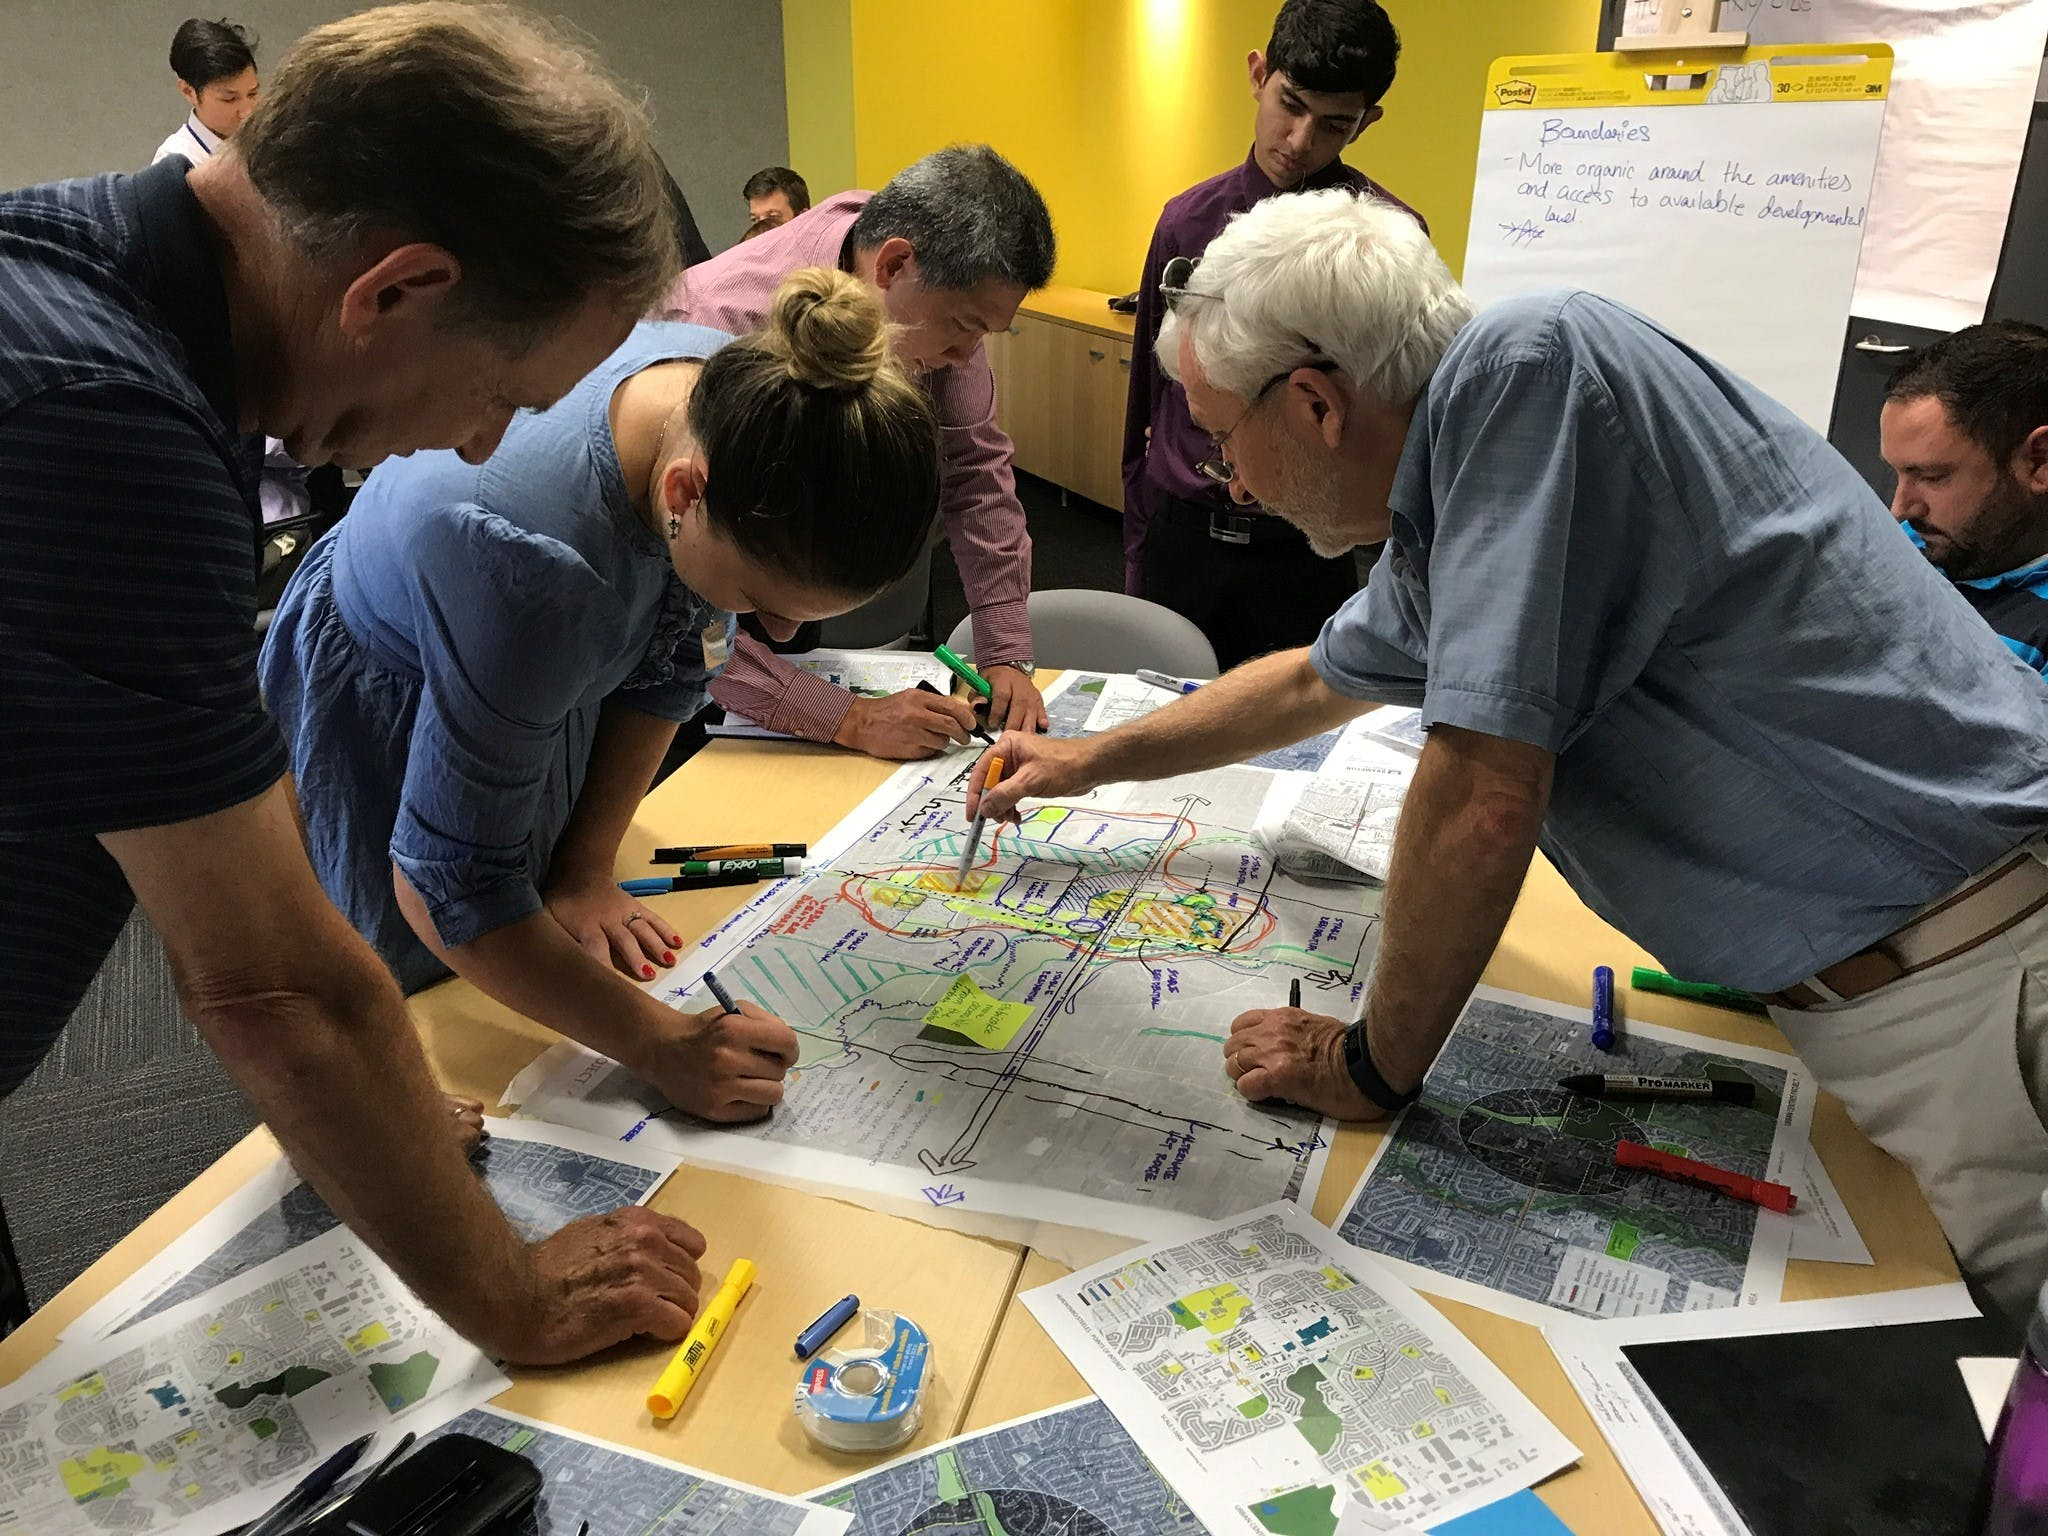 Mapping out ideas for our urban centres